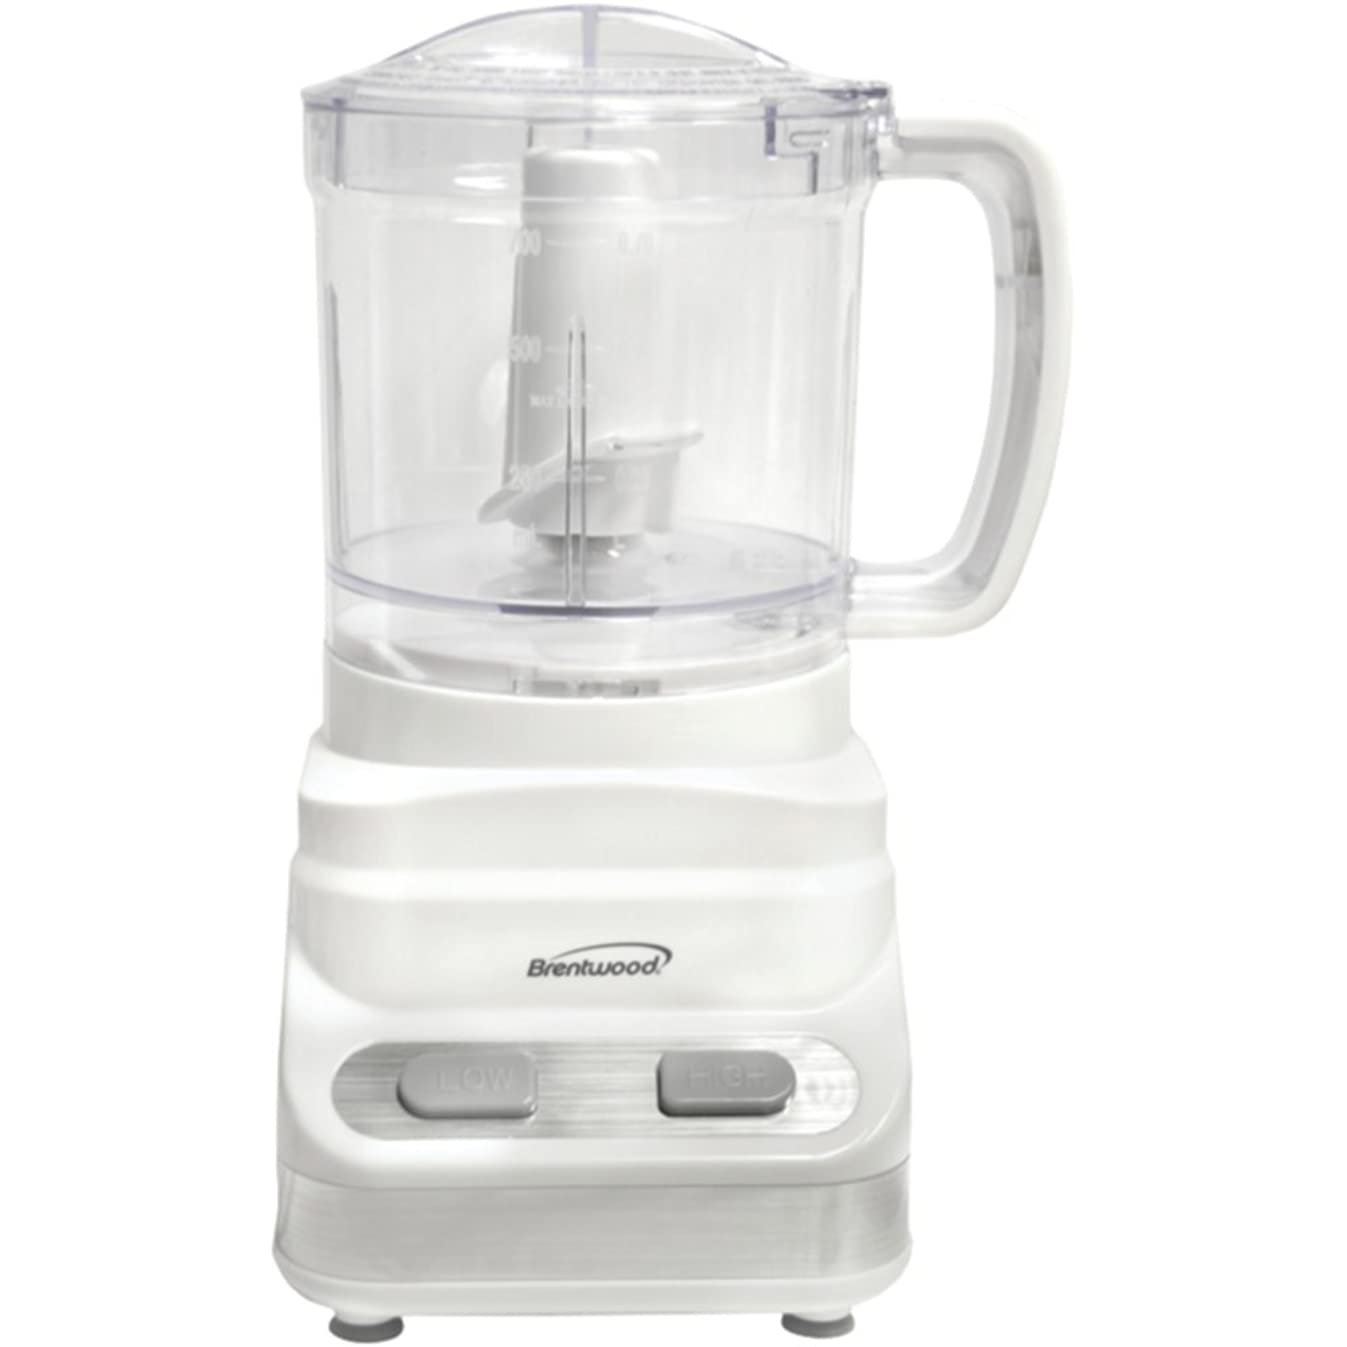 Brentwood 0 Food Processor 3_Cup White